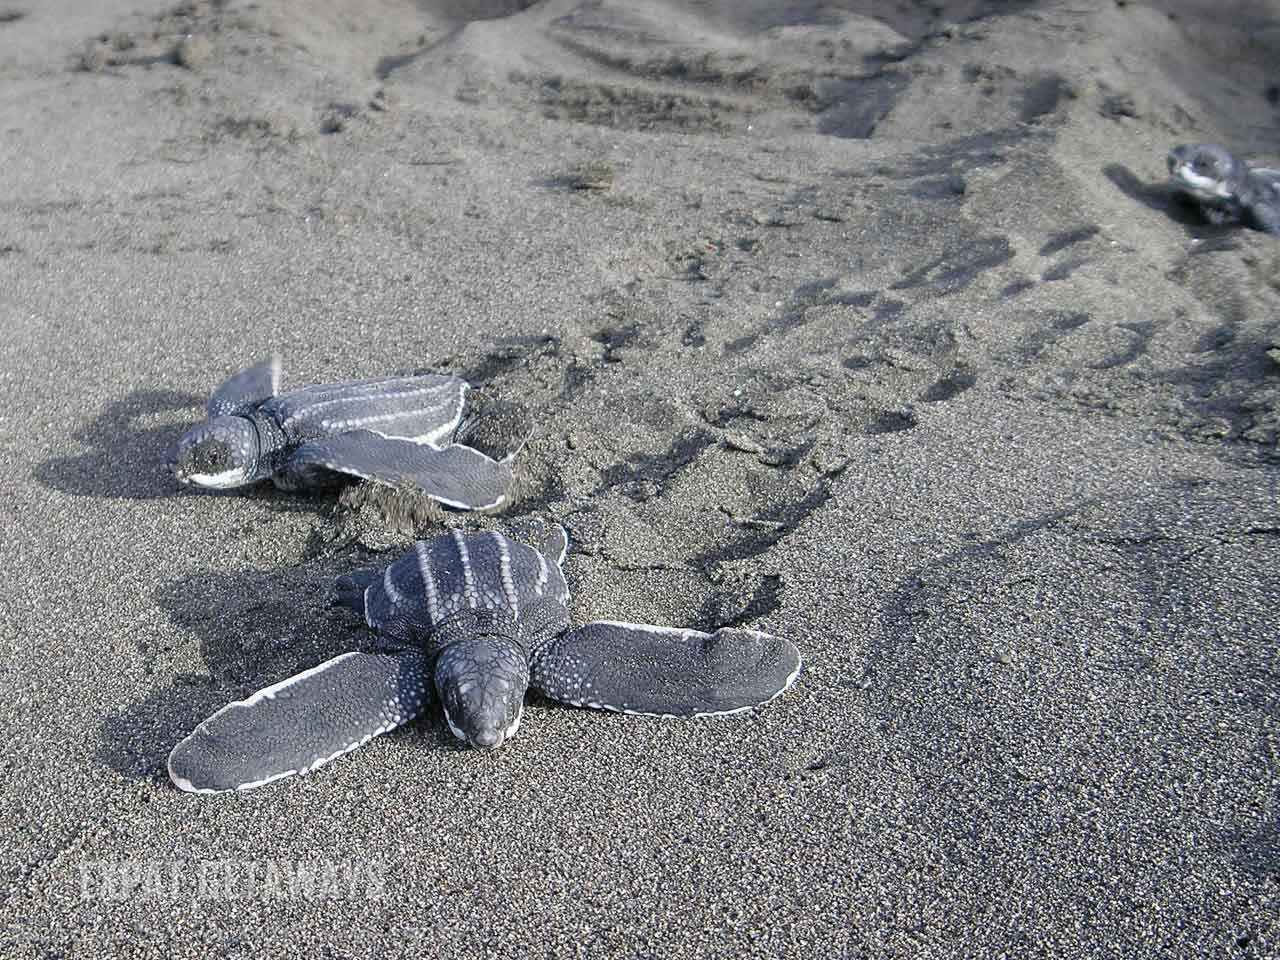 A baby leatherback sea turtle makes its way across the sand to the sea. La Tortuga Feliz, Costa Rica.